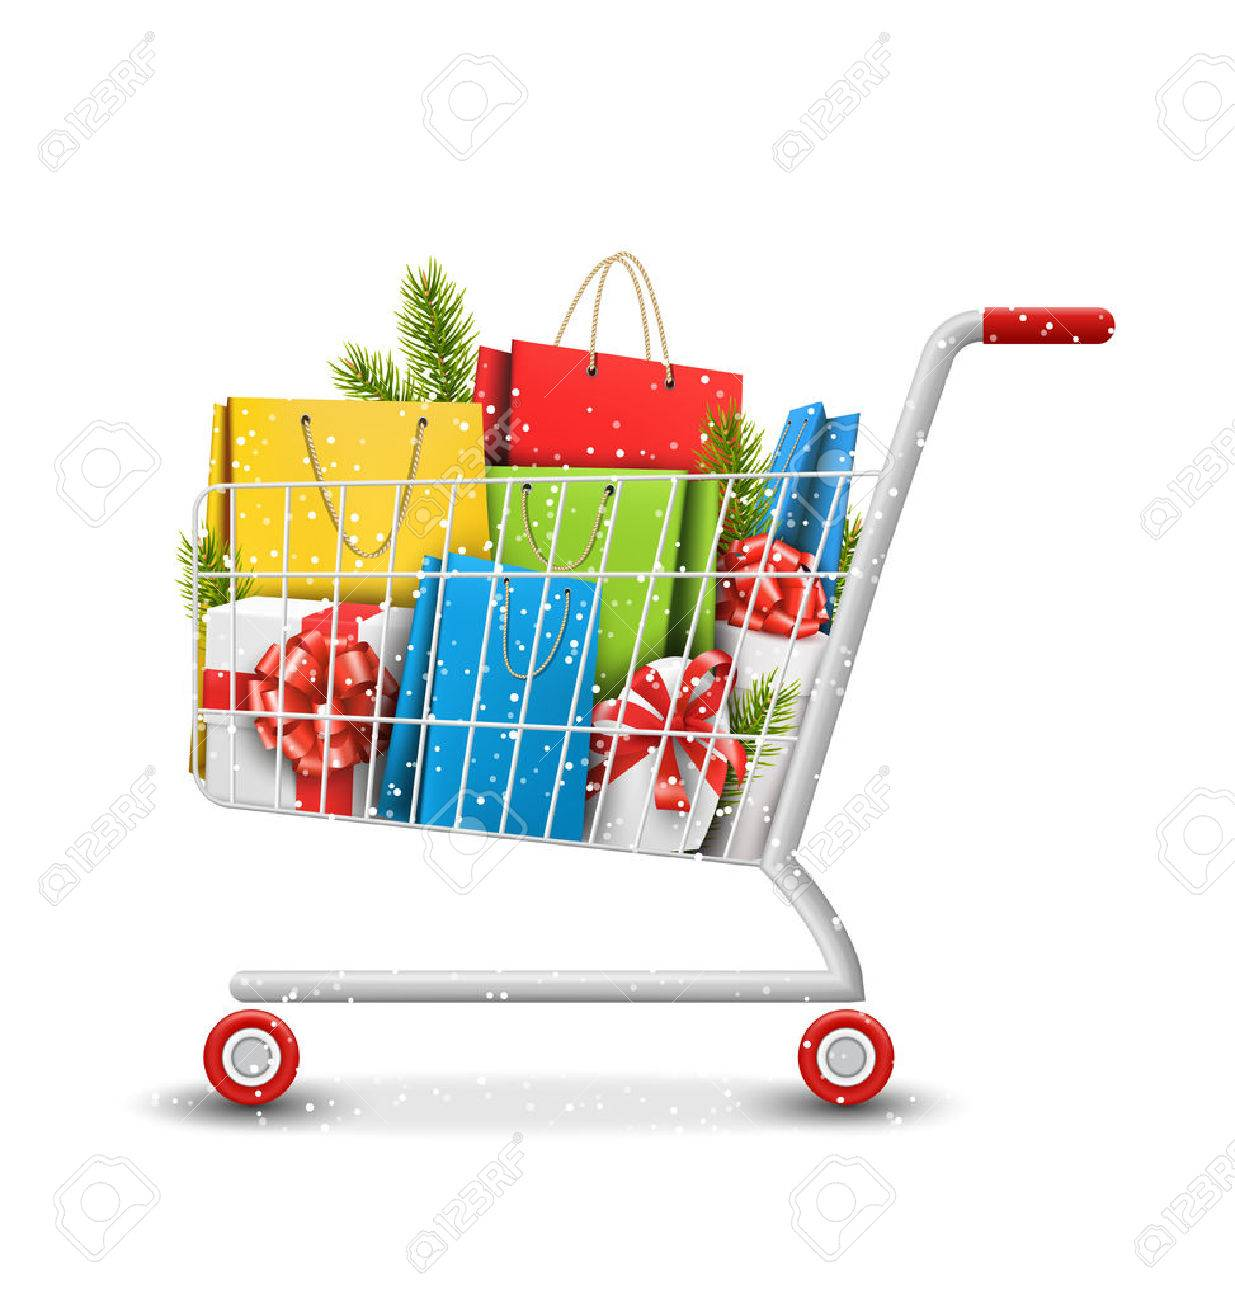 Christmas Winter Sale Shopping Cart with Bags Gift Boxes and Pine Branches Isolated on White Background - 47839062